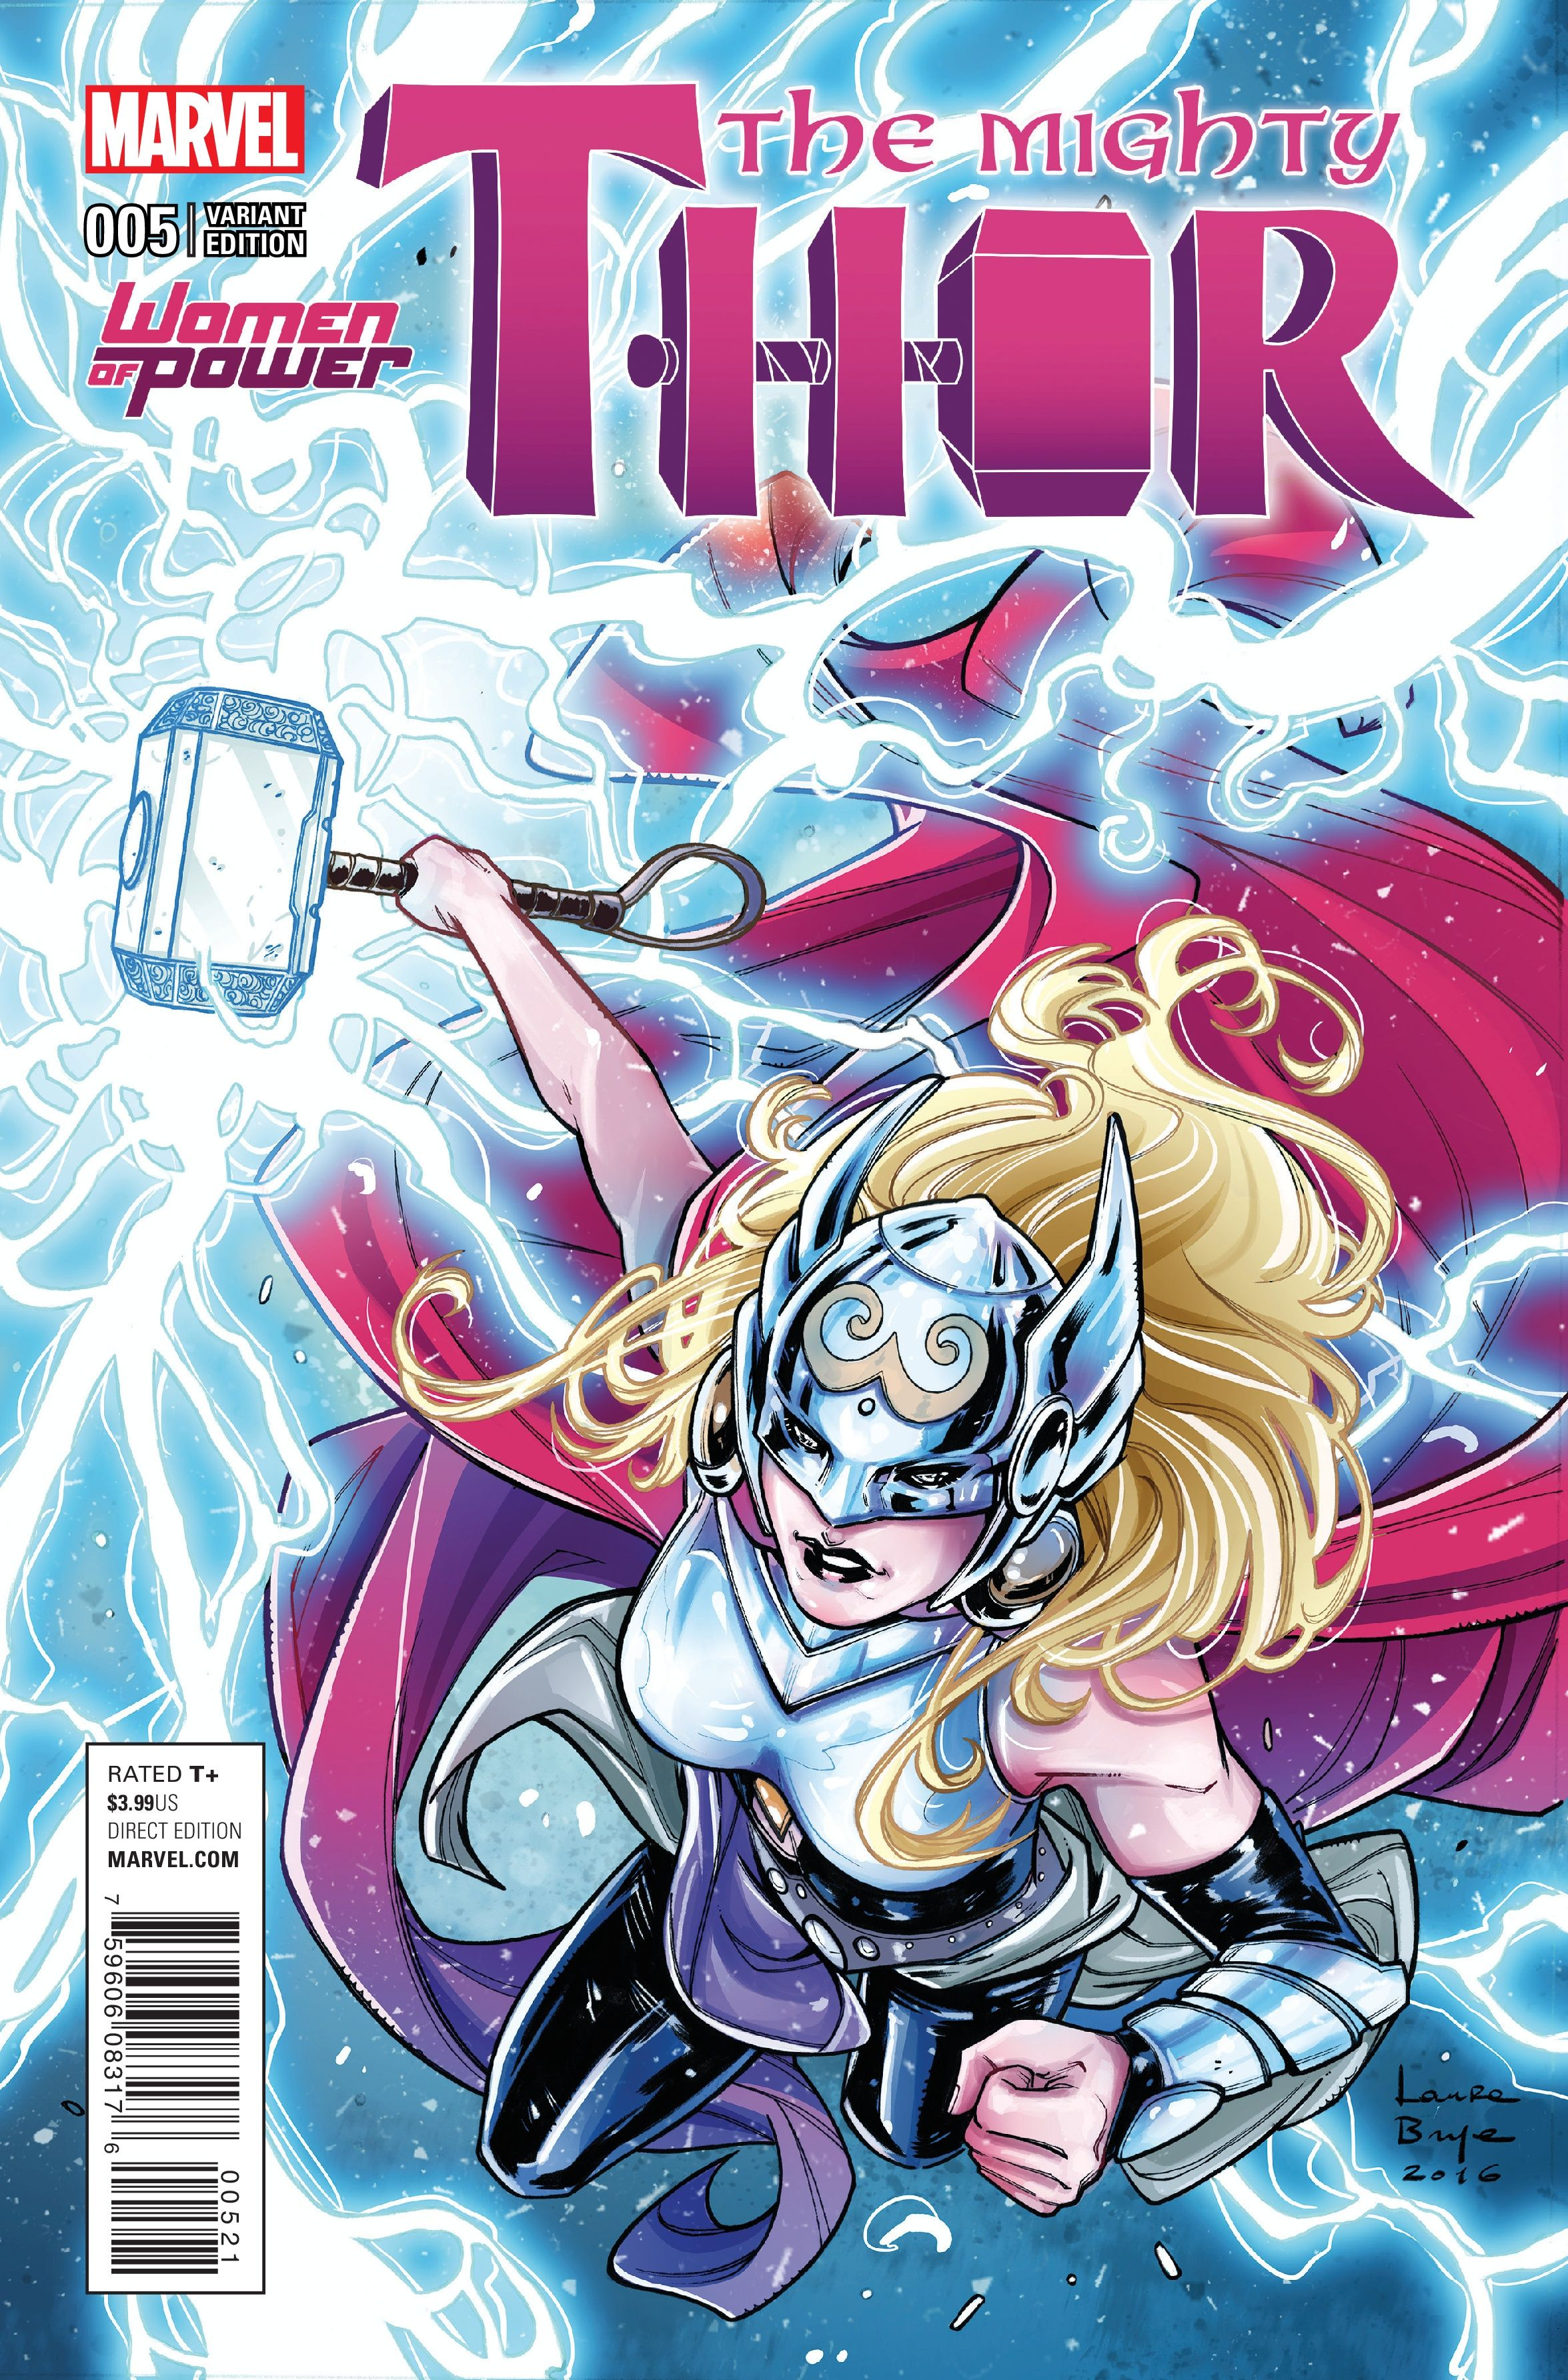 Sorry, Mighty thor vibrator not